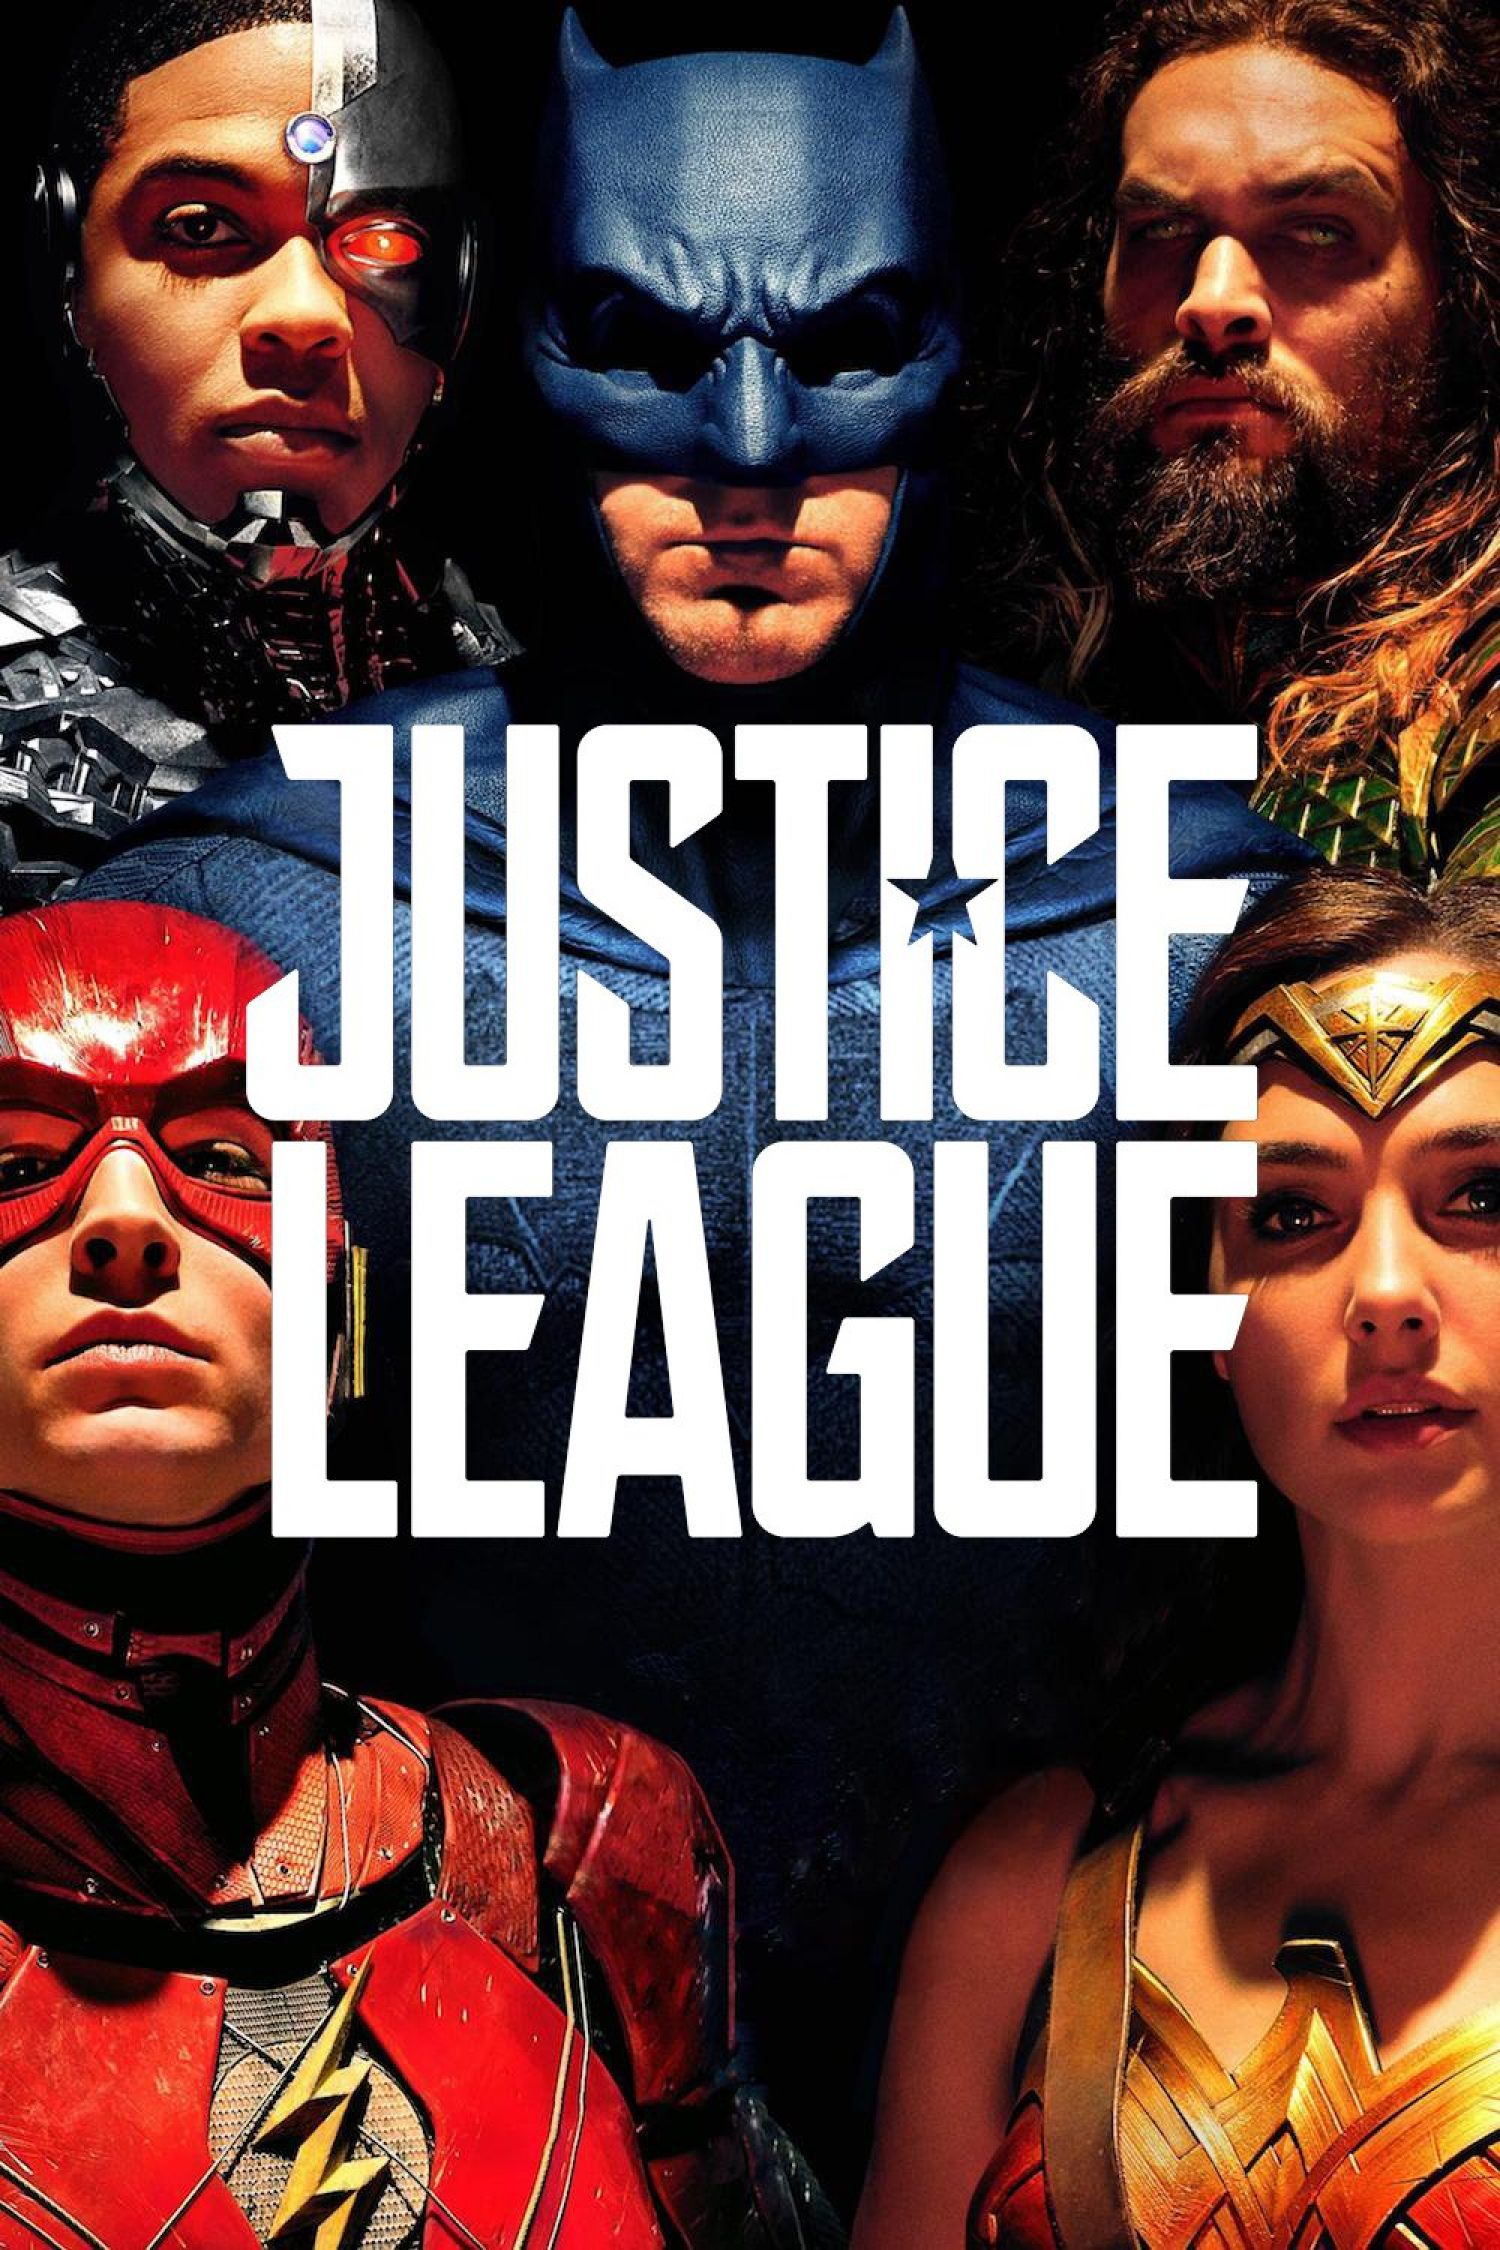 377-justice_league-poster.jpg